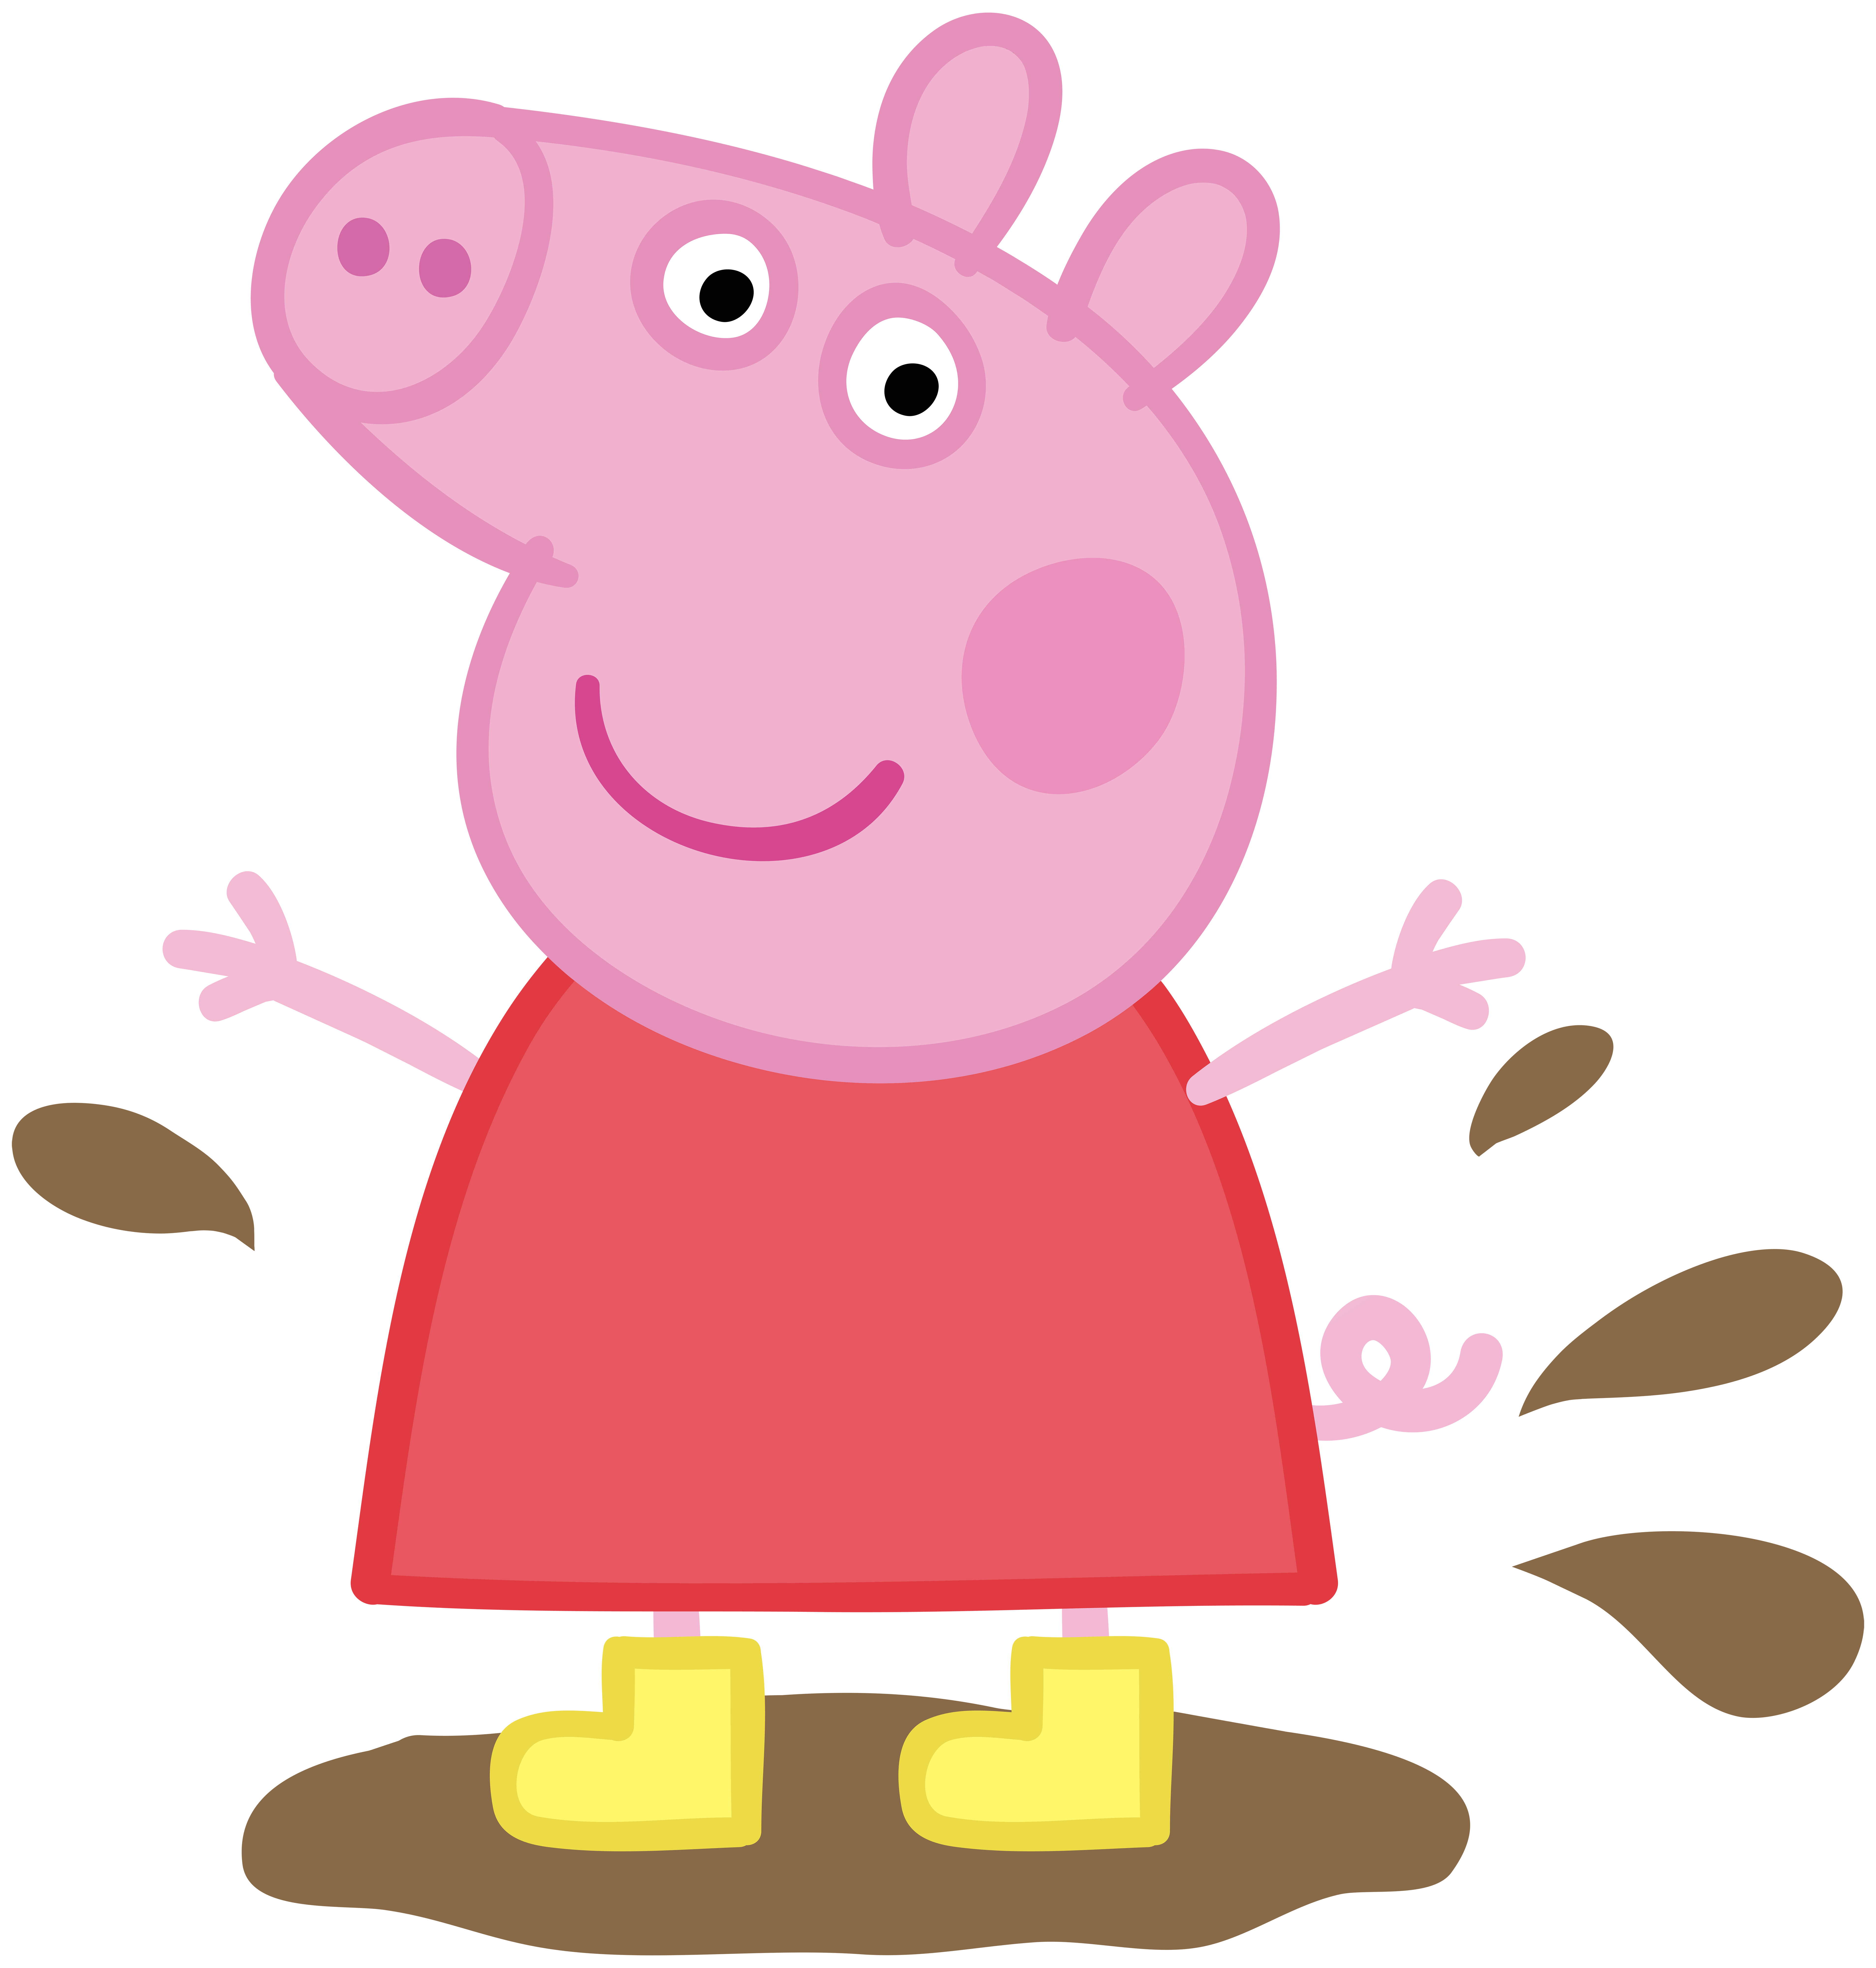 Peppa Pig in Muddy Puddle Transparent PNG Image.